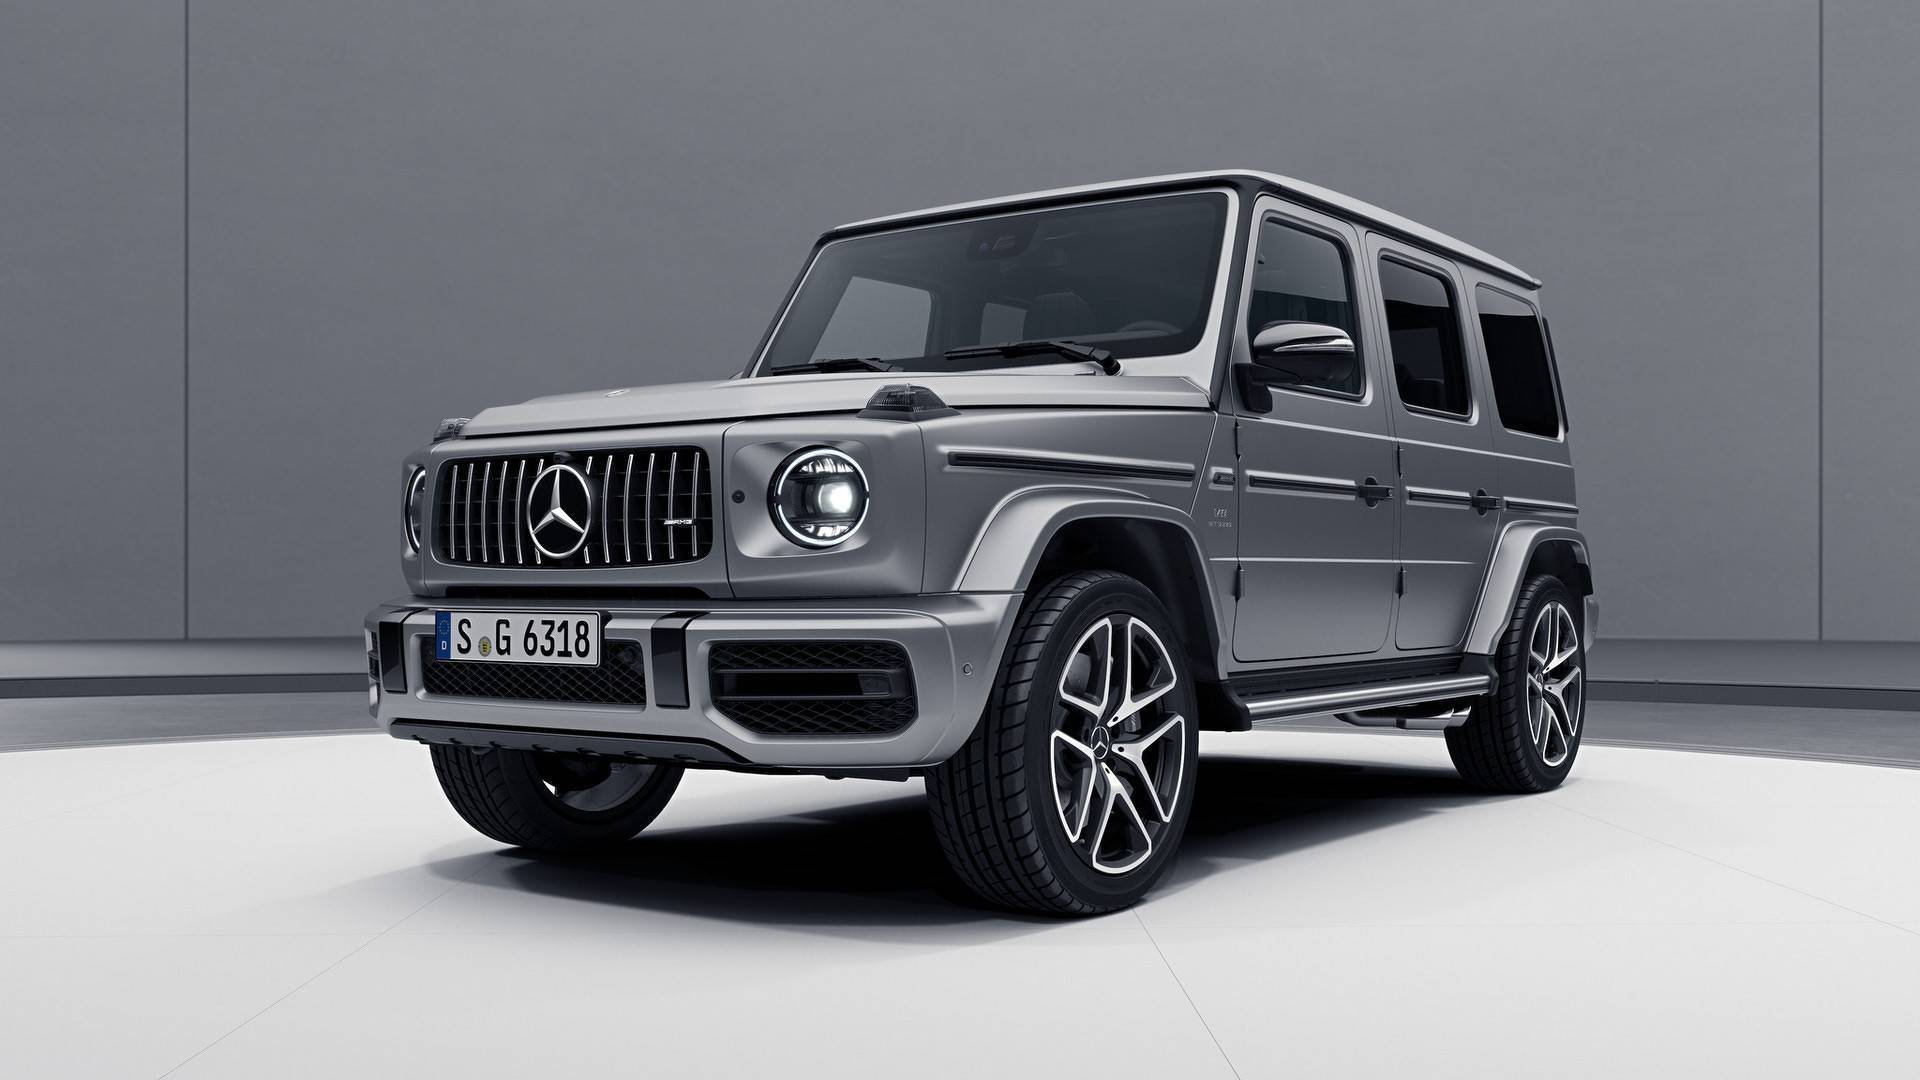 2019 mercedes amg g63 night package ticks all the right boxes flywheel. Black Bedroom Furniture Sets. Home Design Ideas